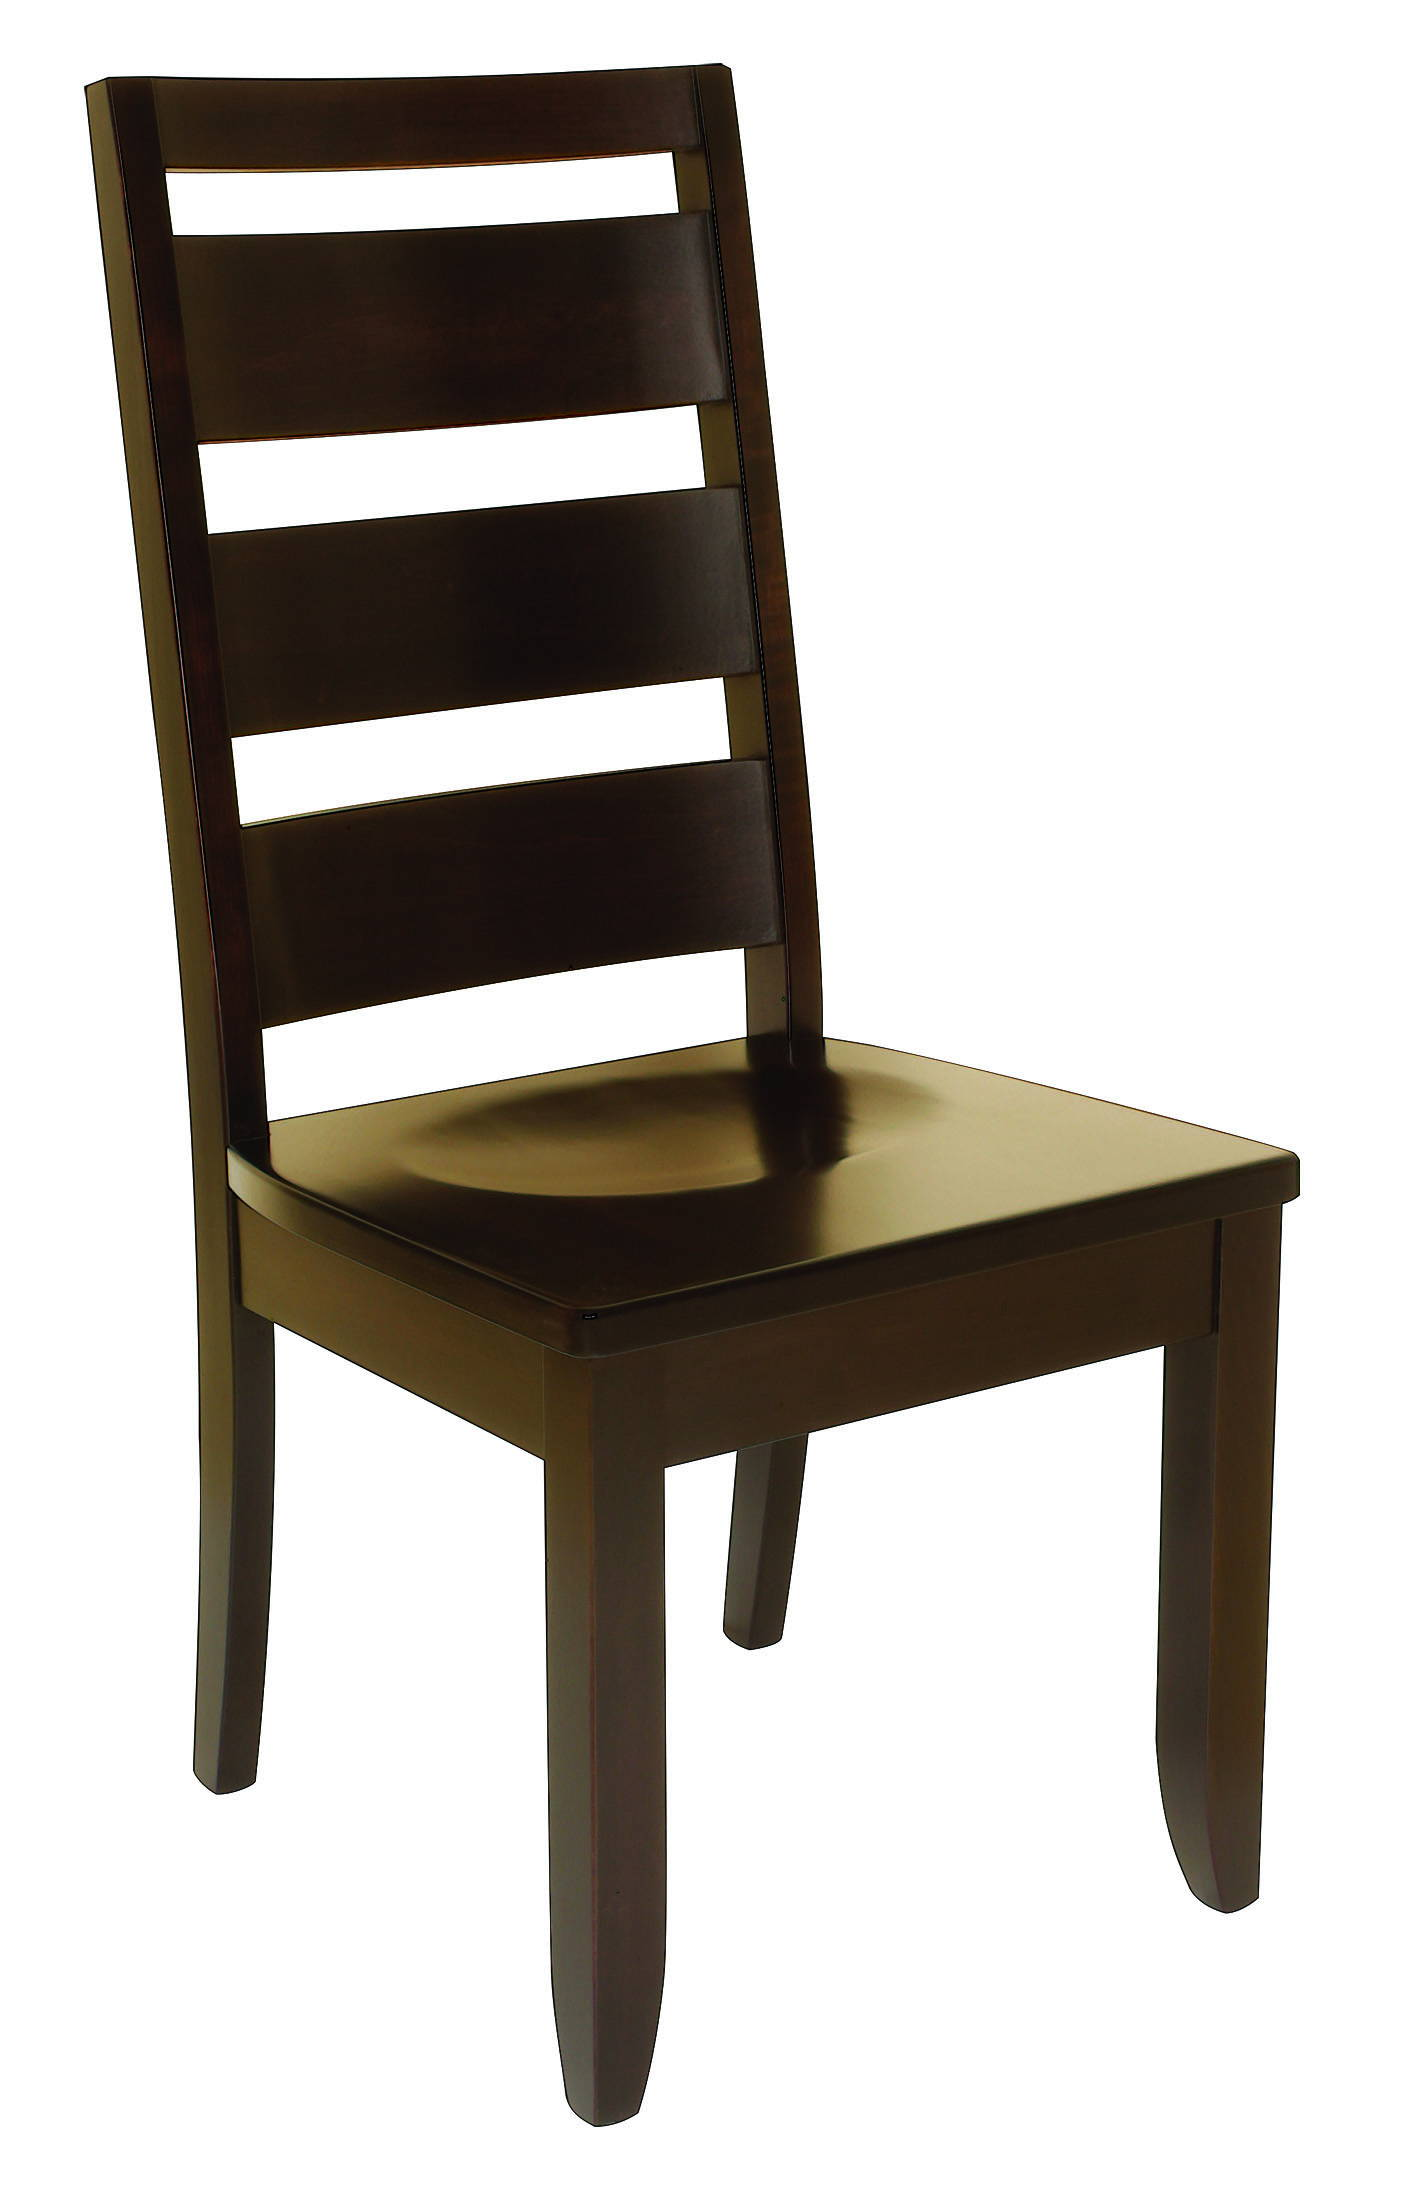 Lakeland Solid Wood, Handcrafted Kitchen Chair or DIning Chair from Harvest Home Interiors Amish Furniture